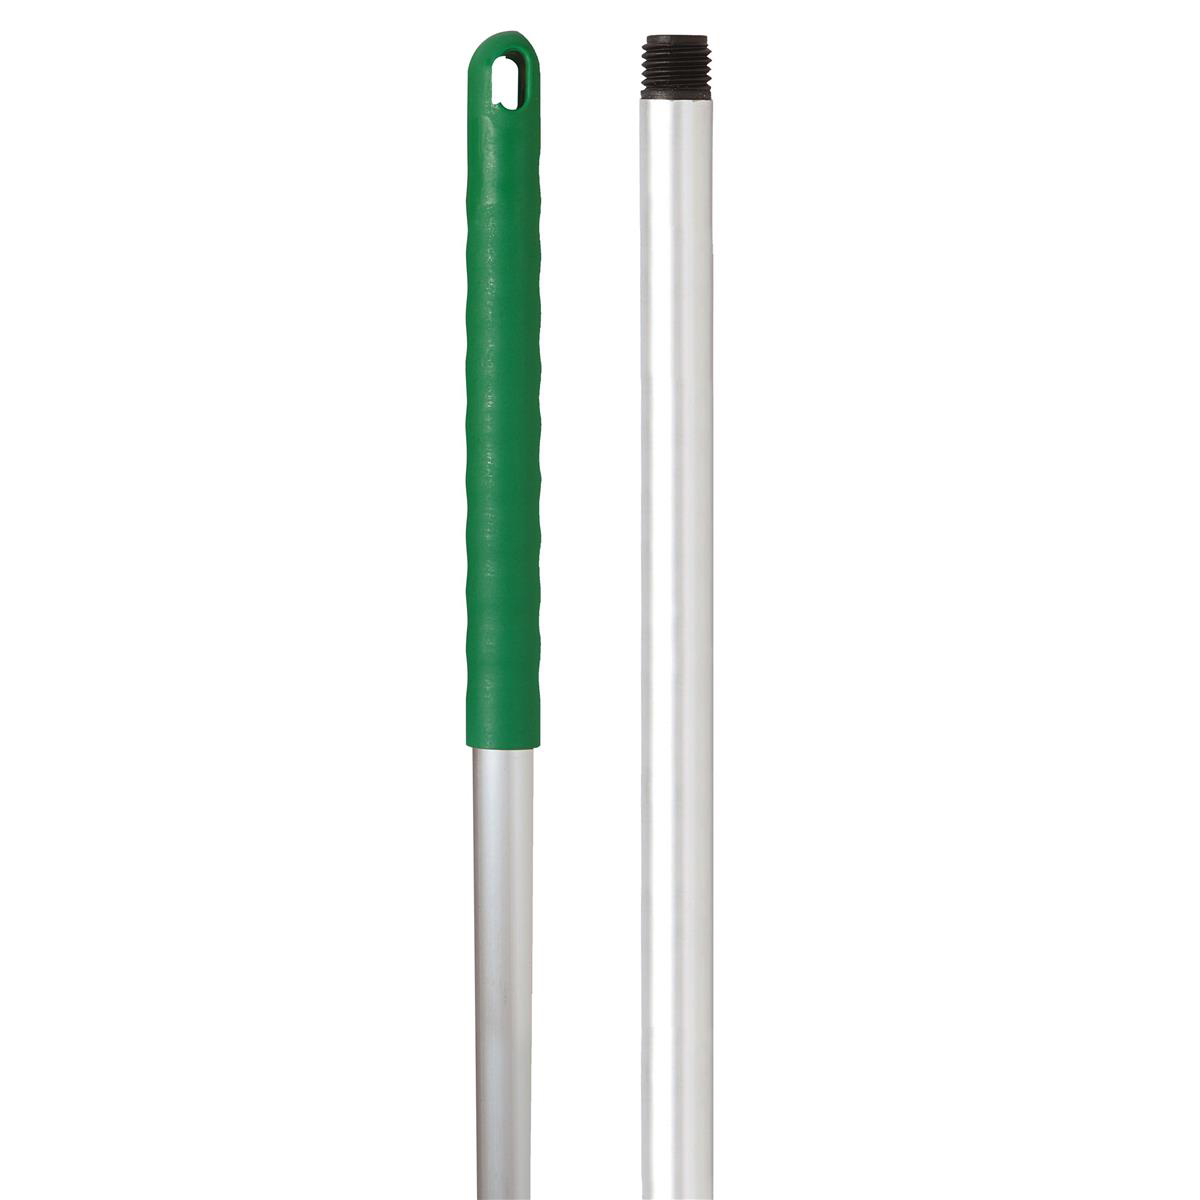 Robert Scott & Sons Abbey Hygiene Mop Handle Aluminium Colour-coded Screw 125cm Green Ref 103132GREEN